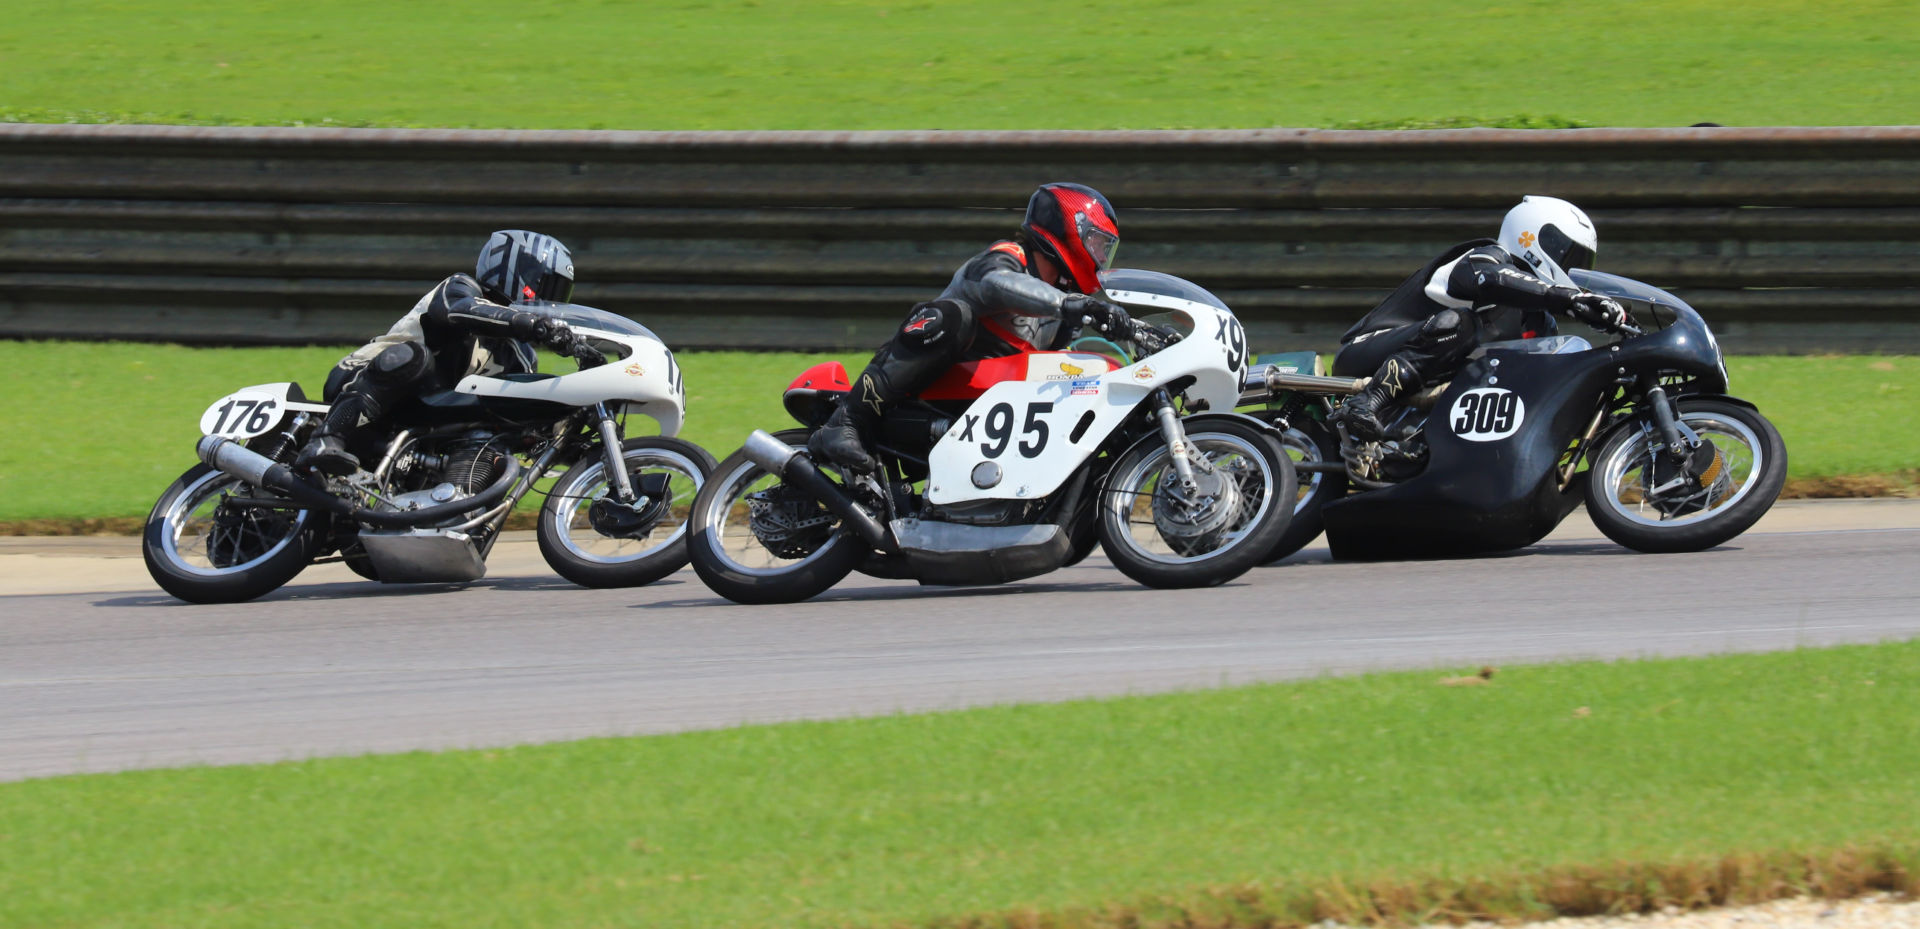 Tim Joyce (309), Andrew Mauk (x95), and Wes Orloff (176) battle during an AHRMA Vintage Cup race at Barber Motorsports Park. Photo by etechphoto.com, courtesy AHRMA.